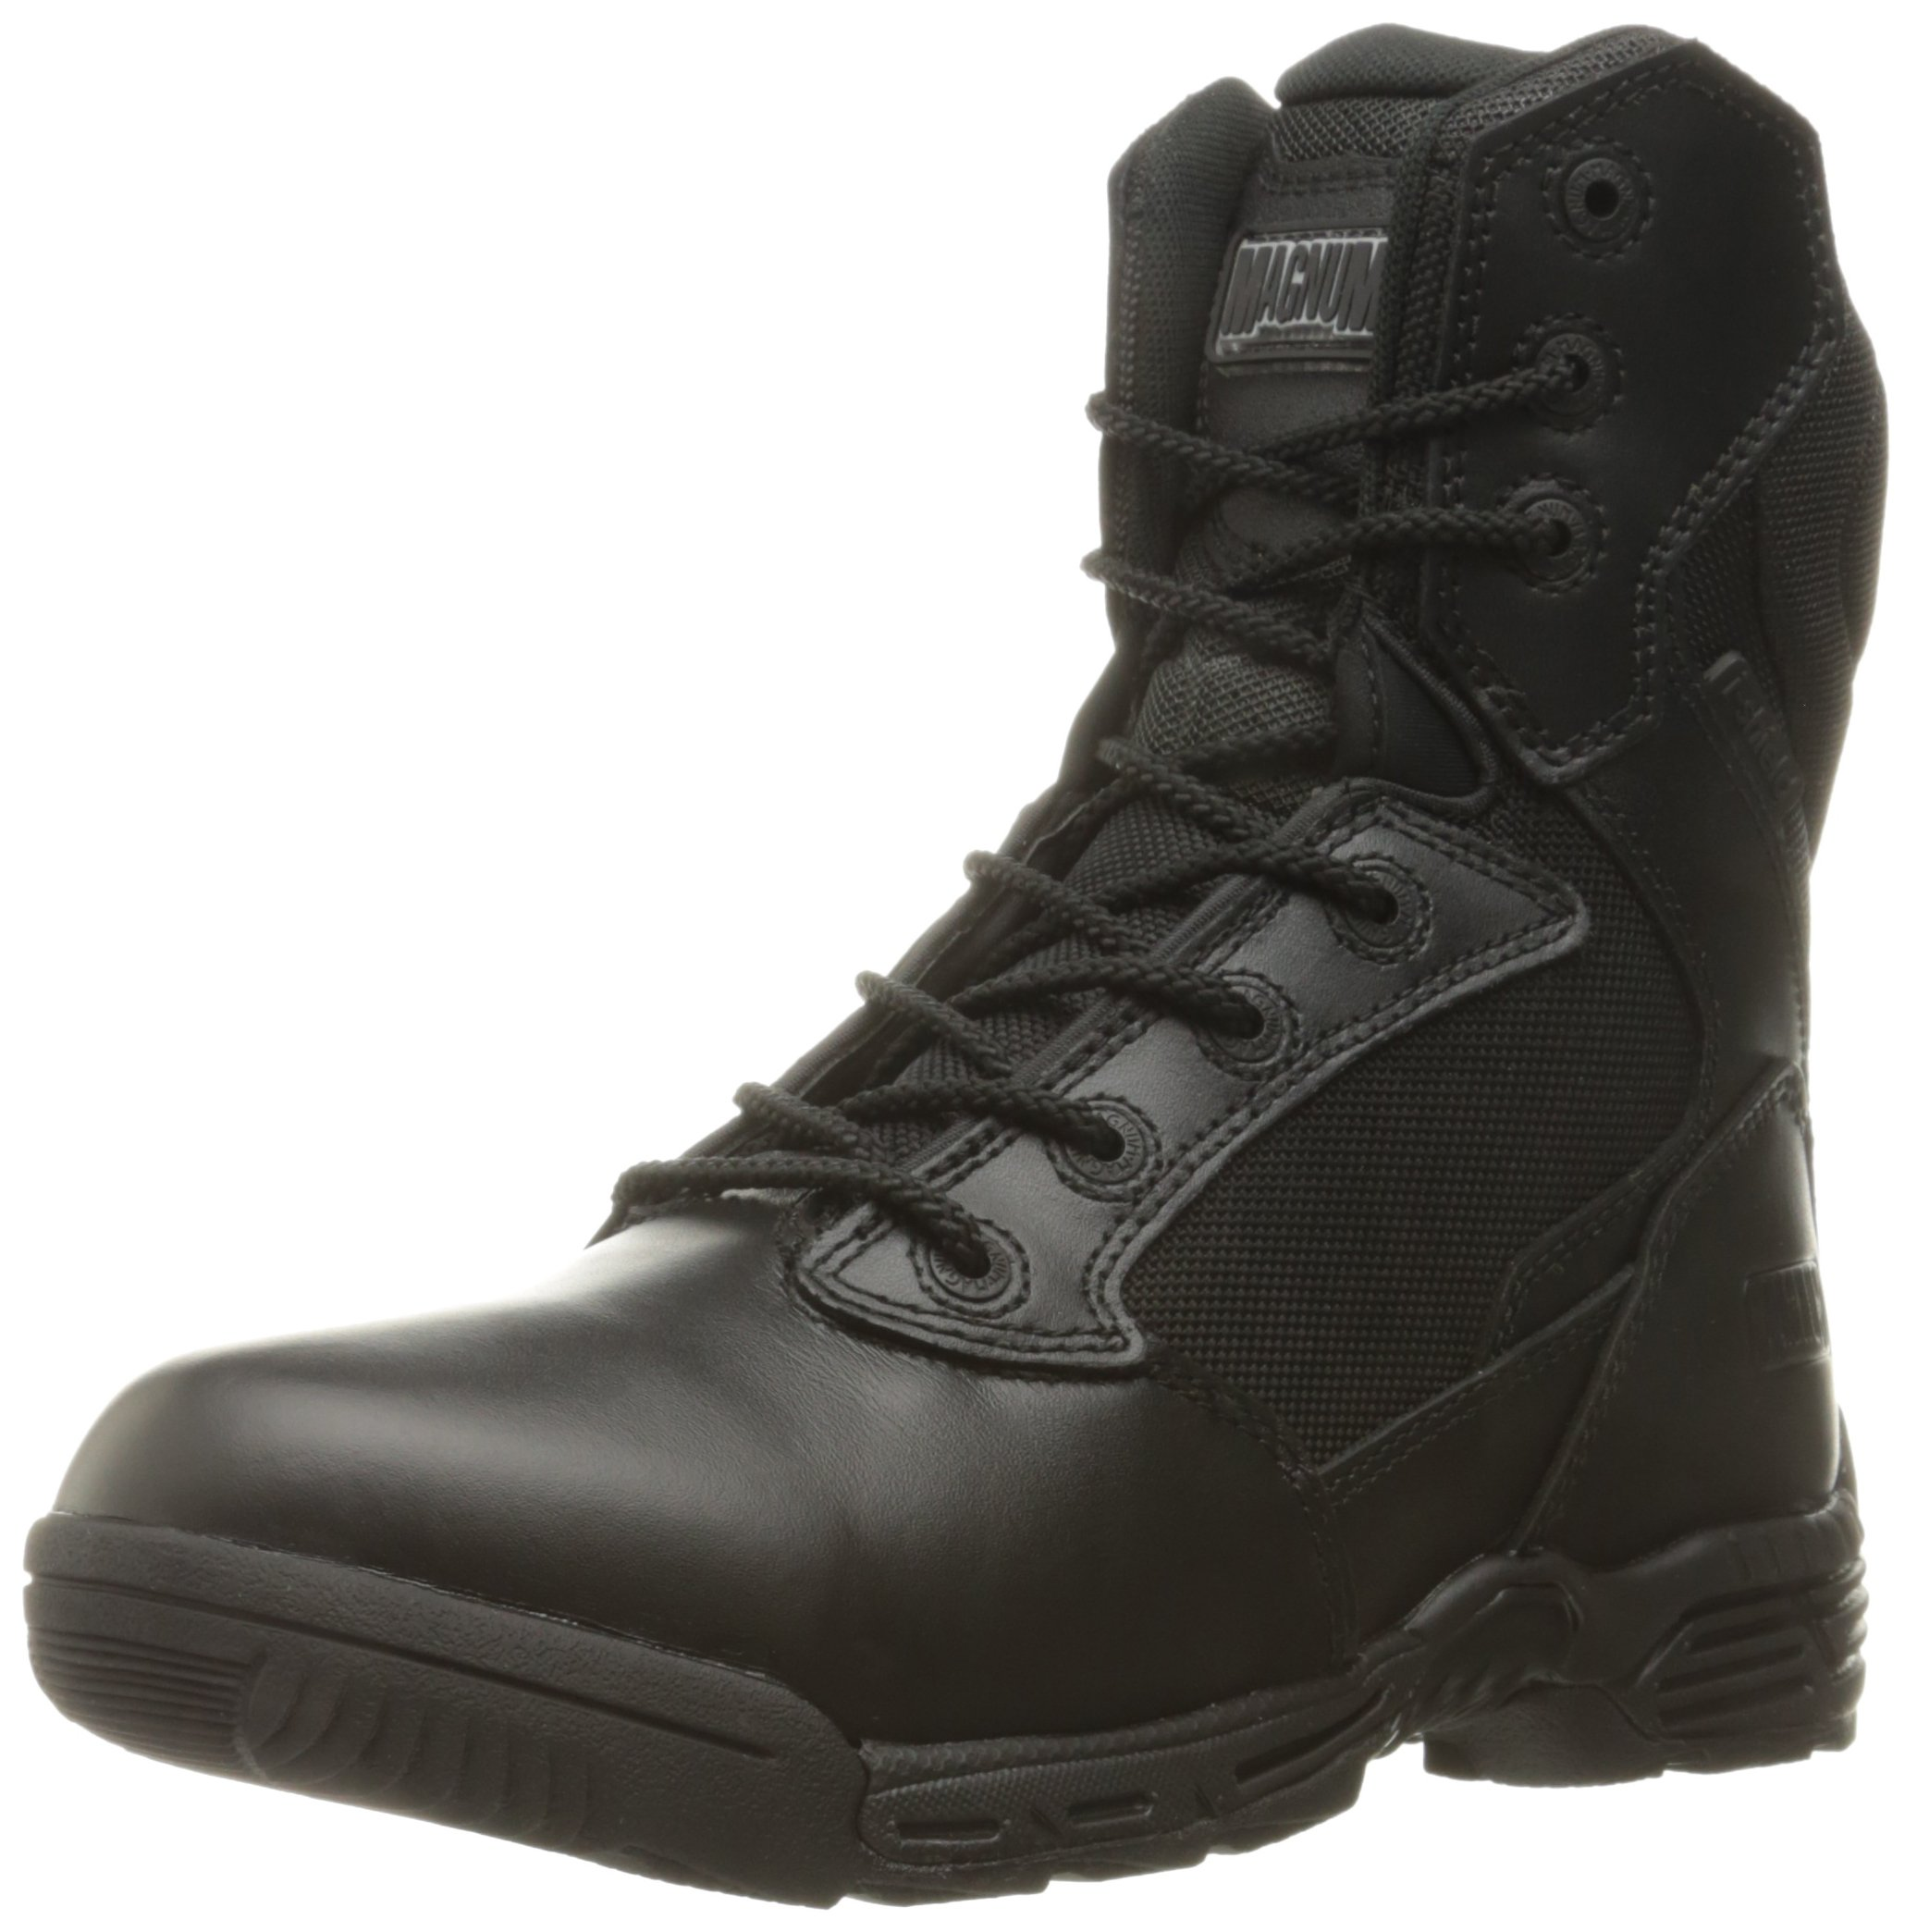 Magnum Women's Stealth Force 8.0 Side Zip Military and Tactical Boot, Black, 8 M US by Magnum